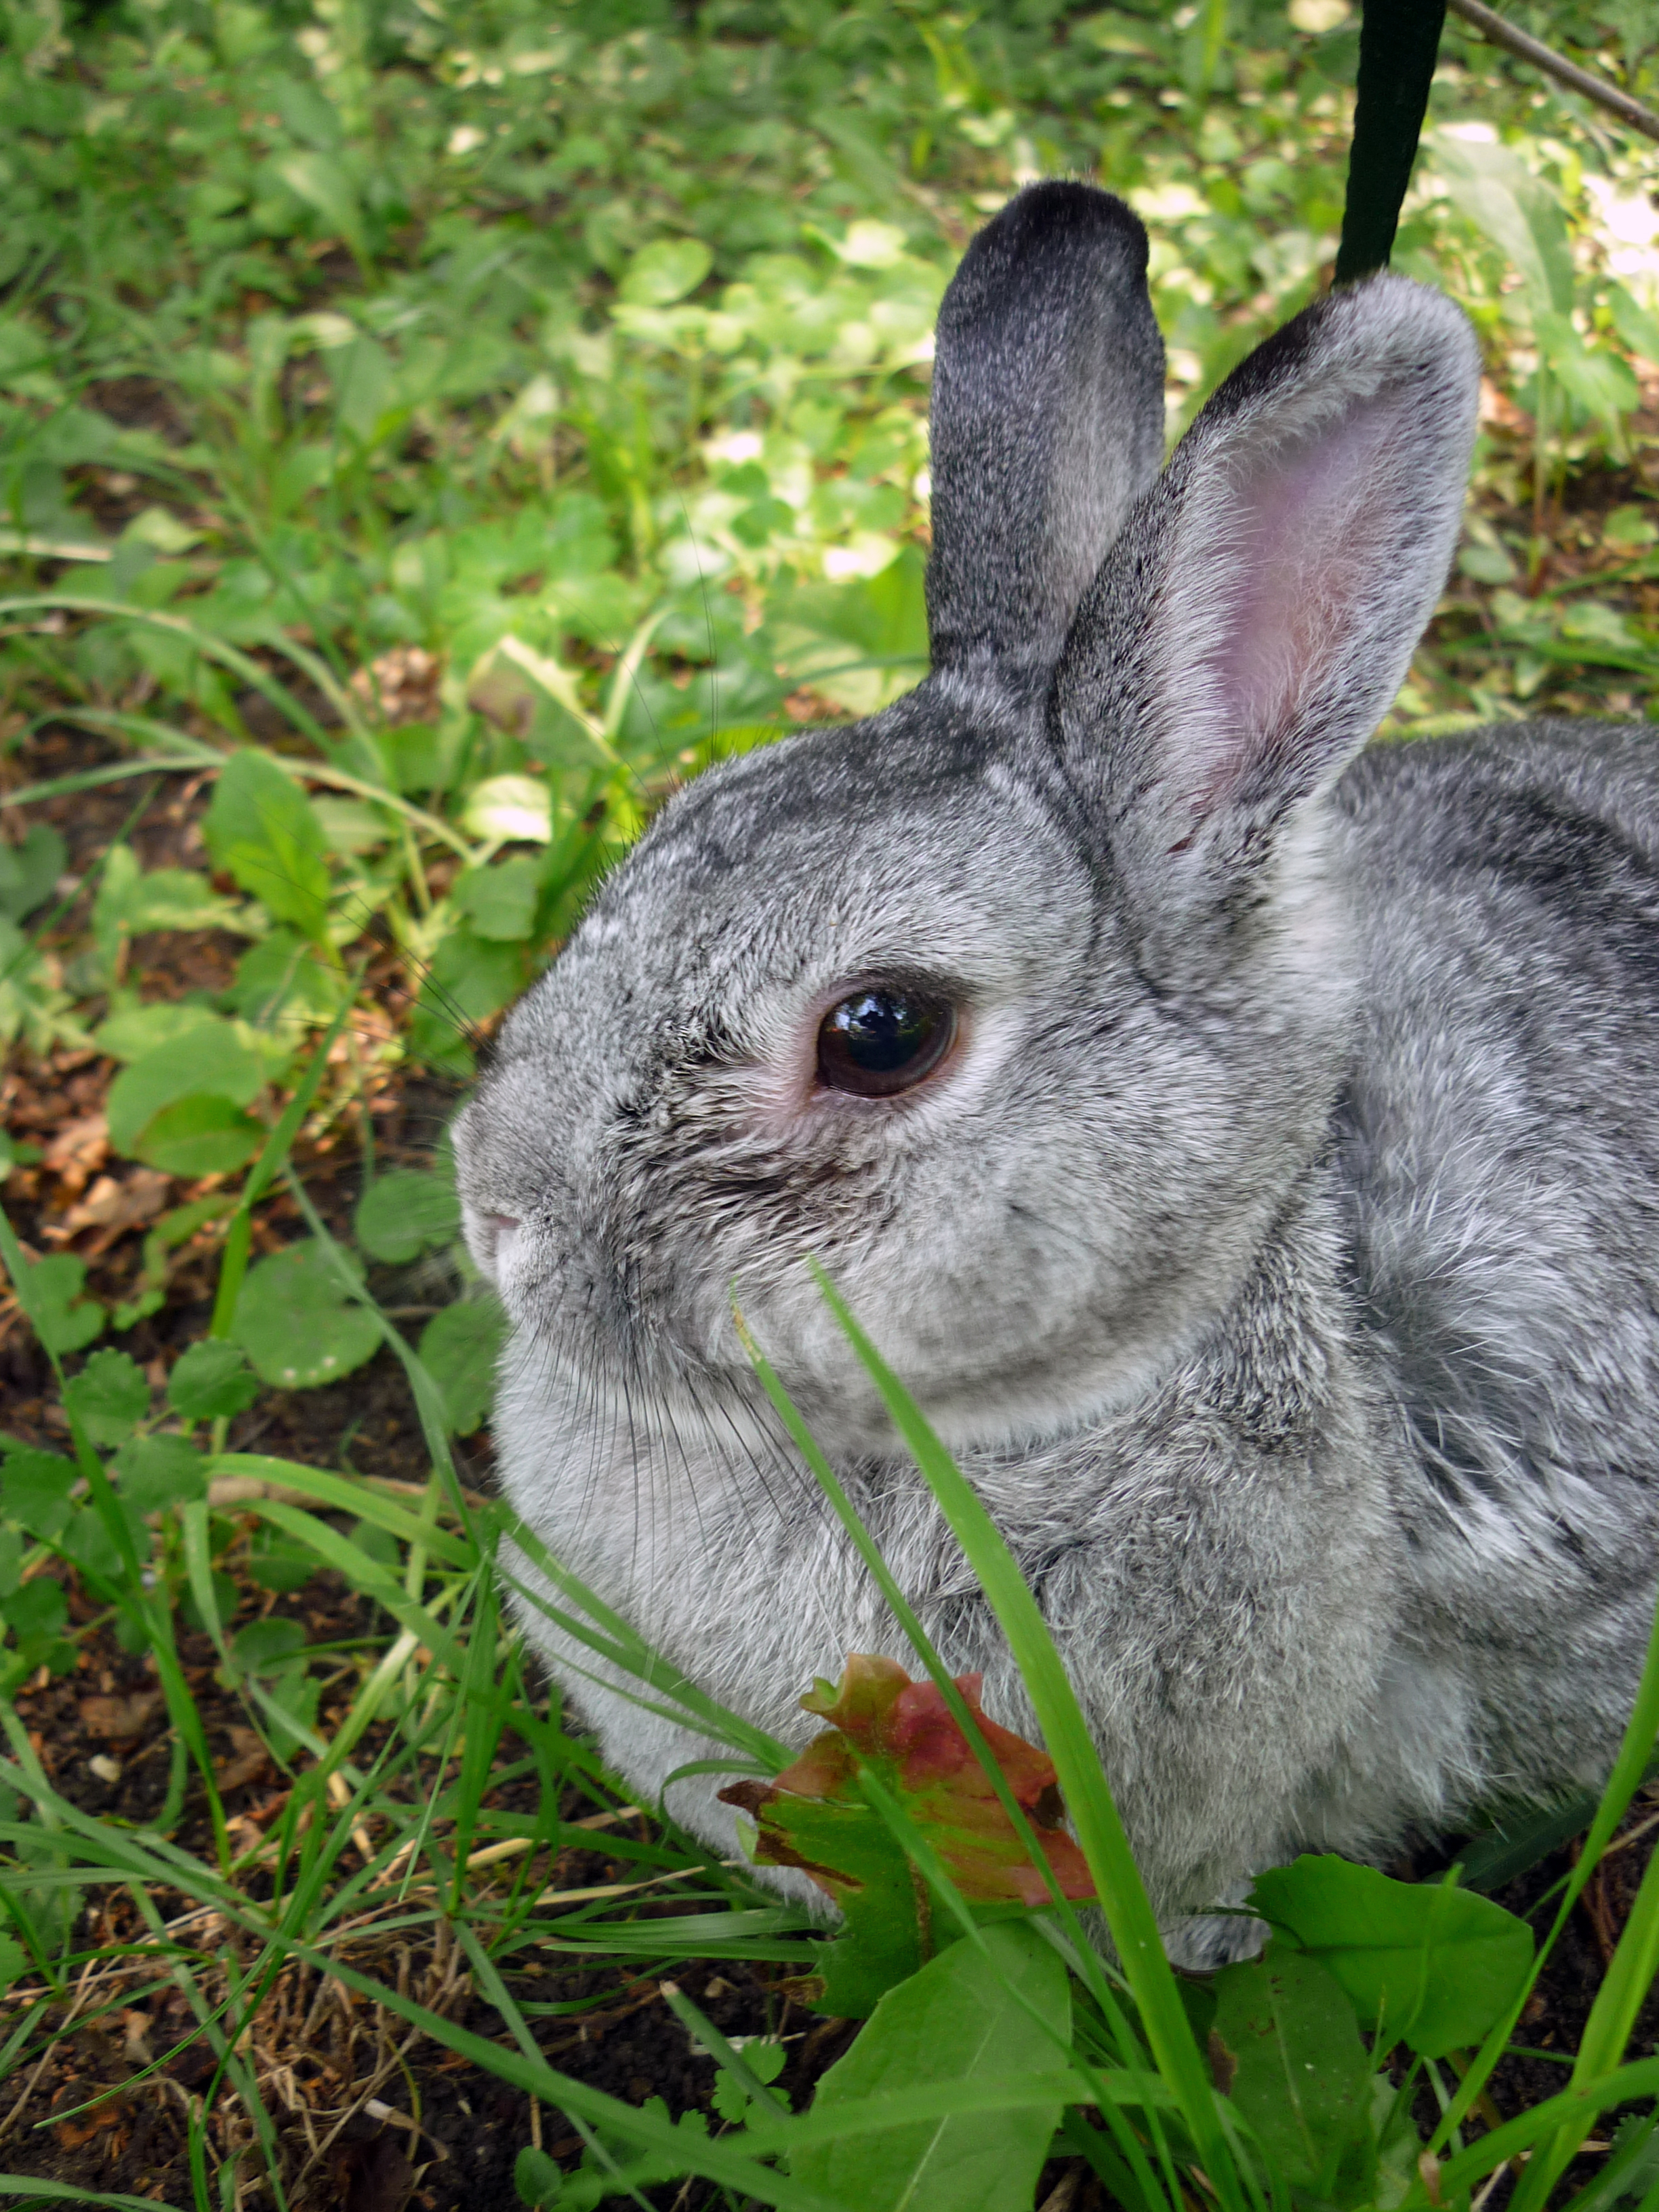 Bunny Settles into Relaxation Mode Outside in Peaceful Green Surroundings